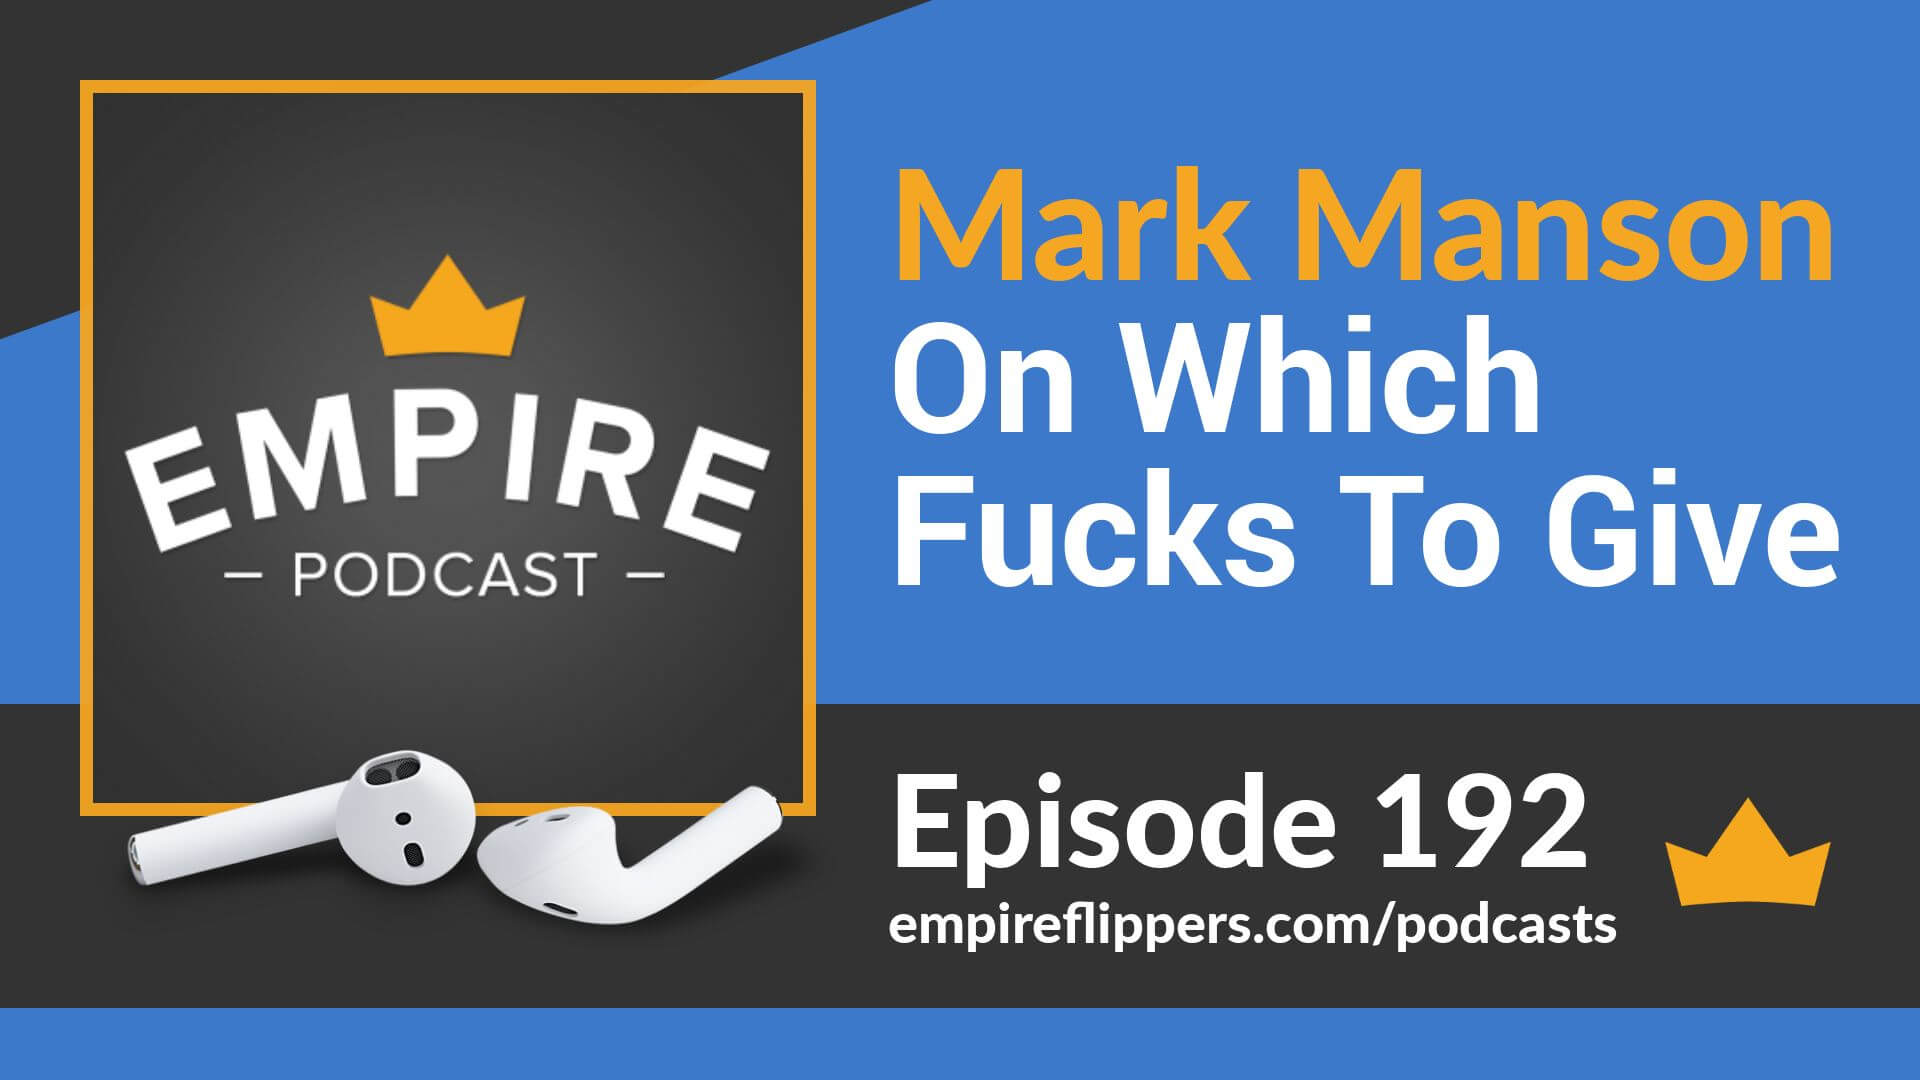 EFP 192 - Mark Manson On Which Fucks To Give